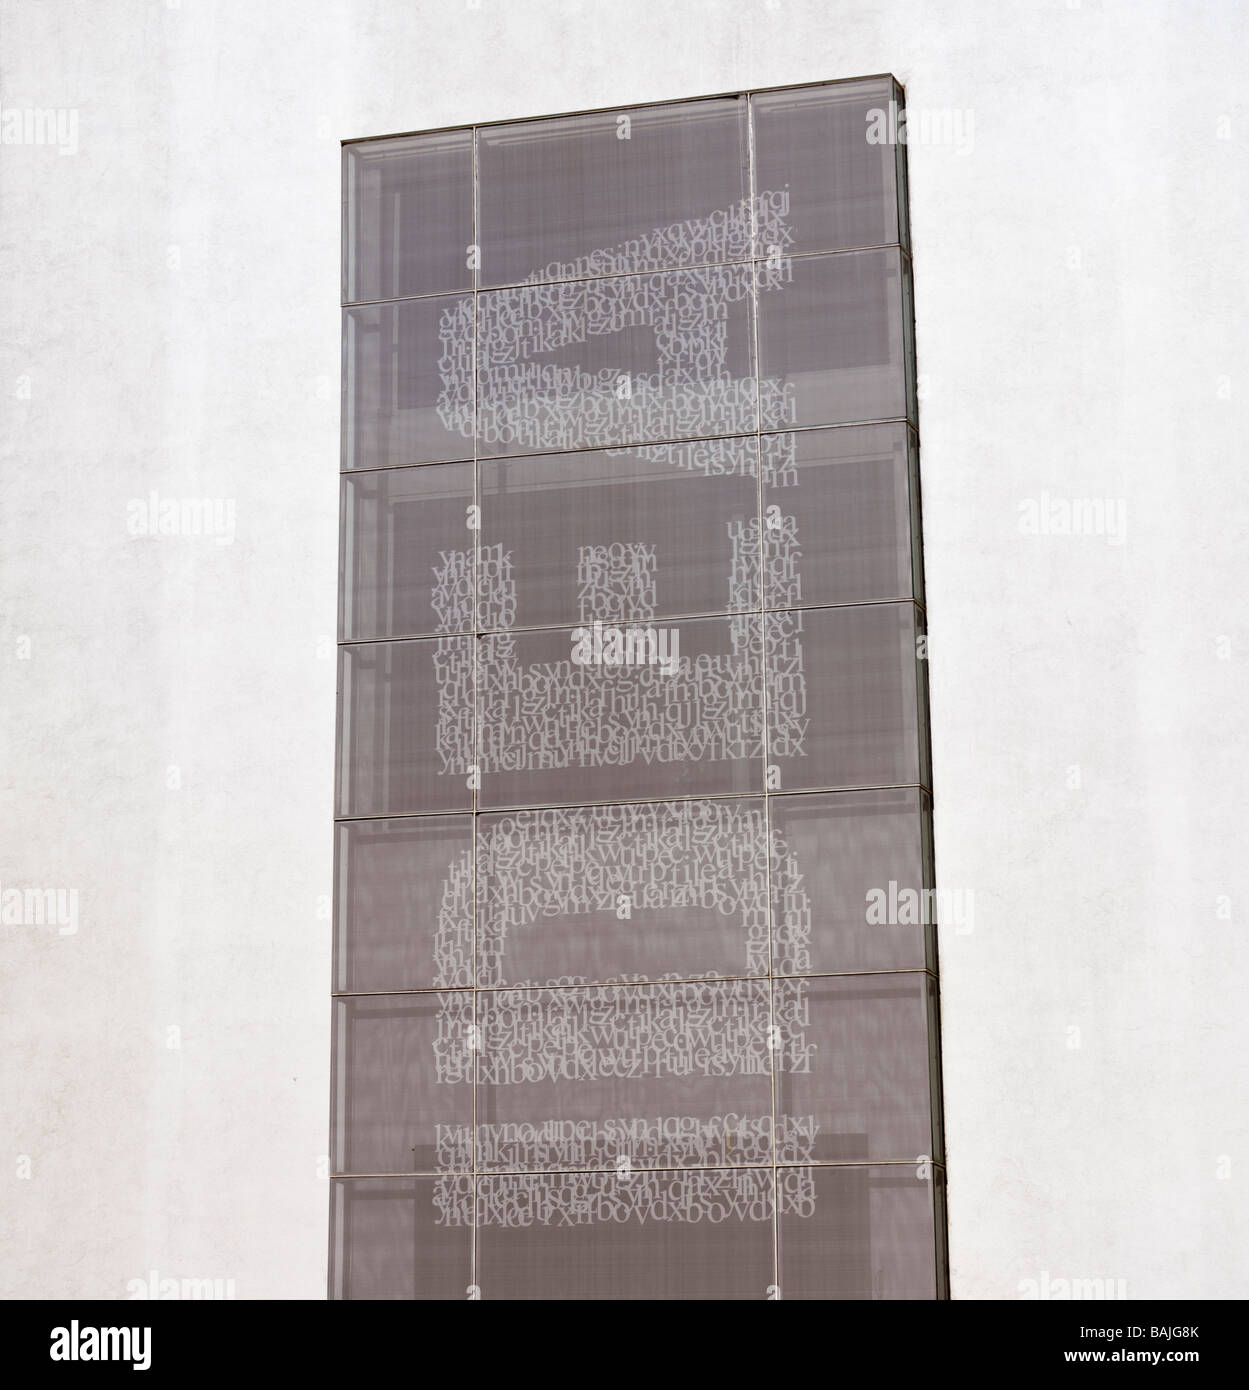 Israel Tel Aviv Rothschild Boulevard,IDEA on side of building - Stock Image